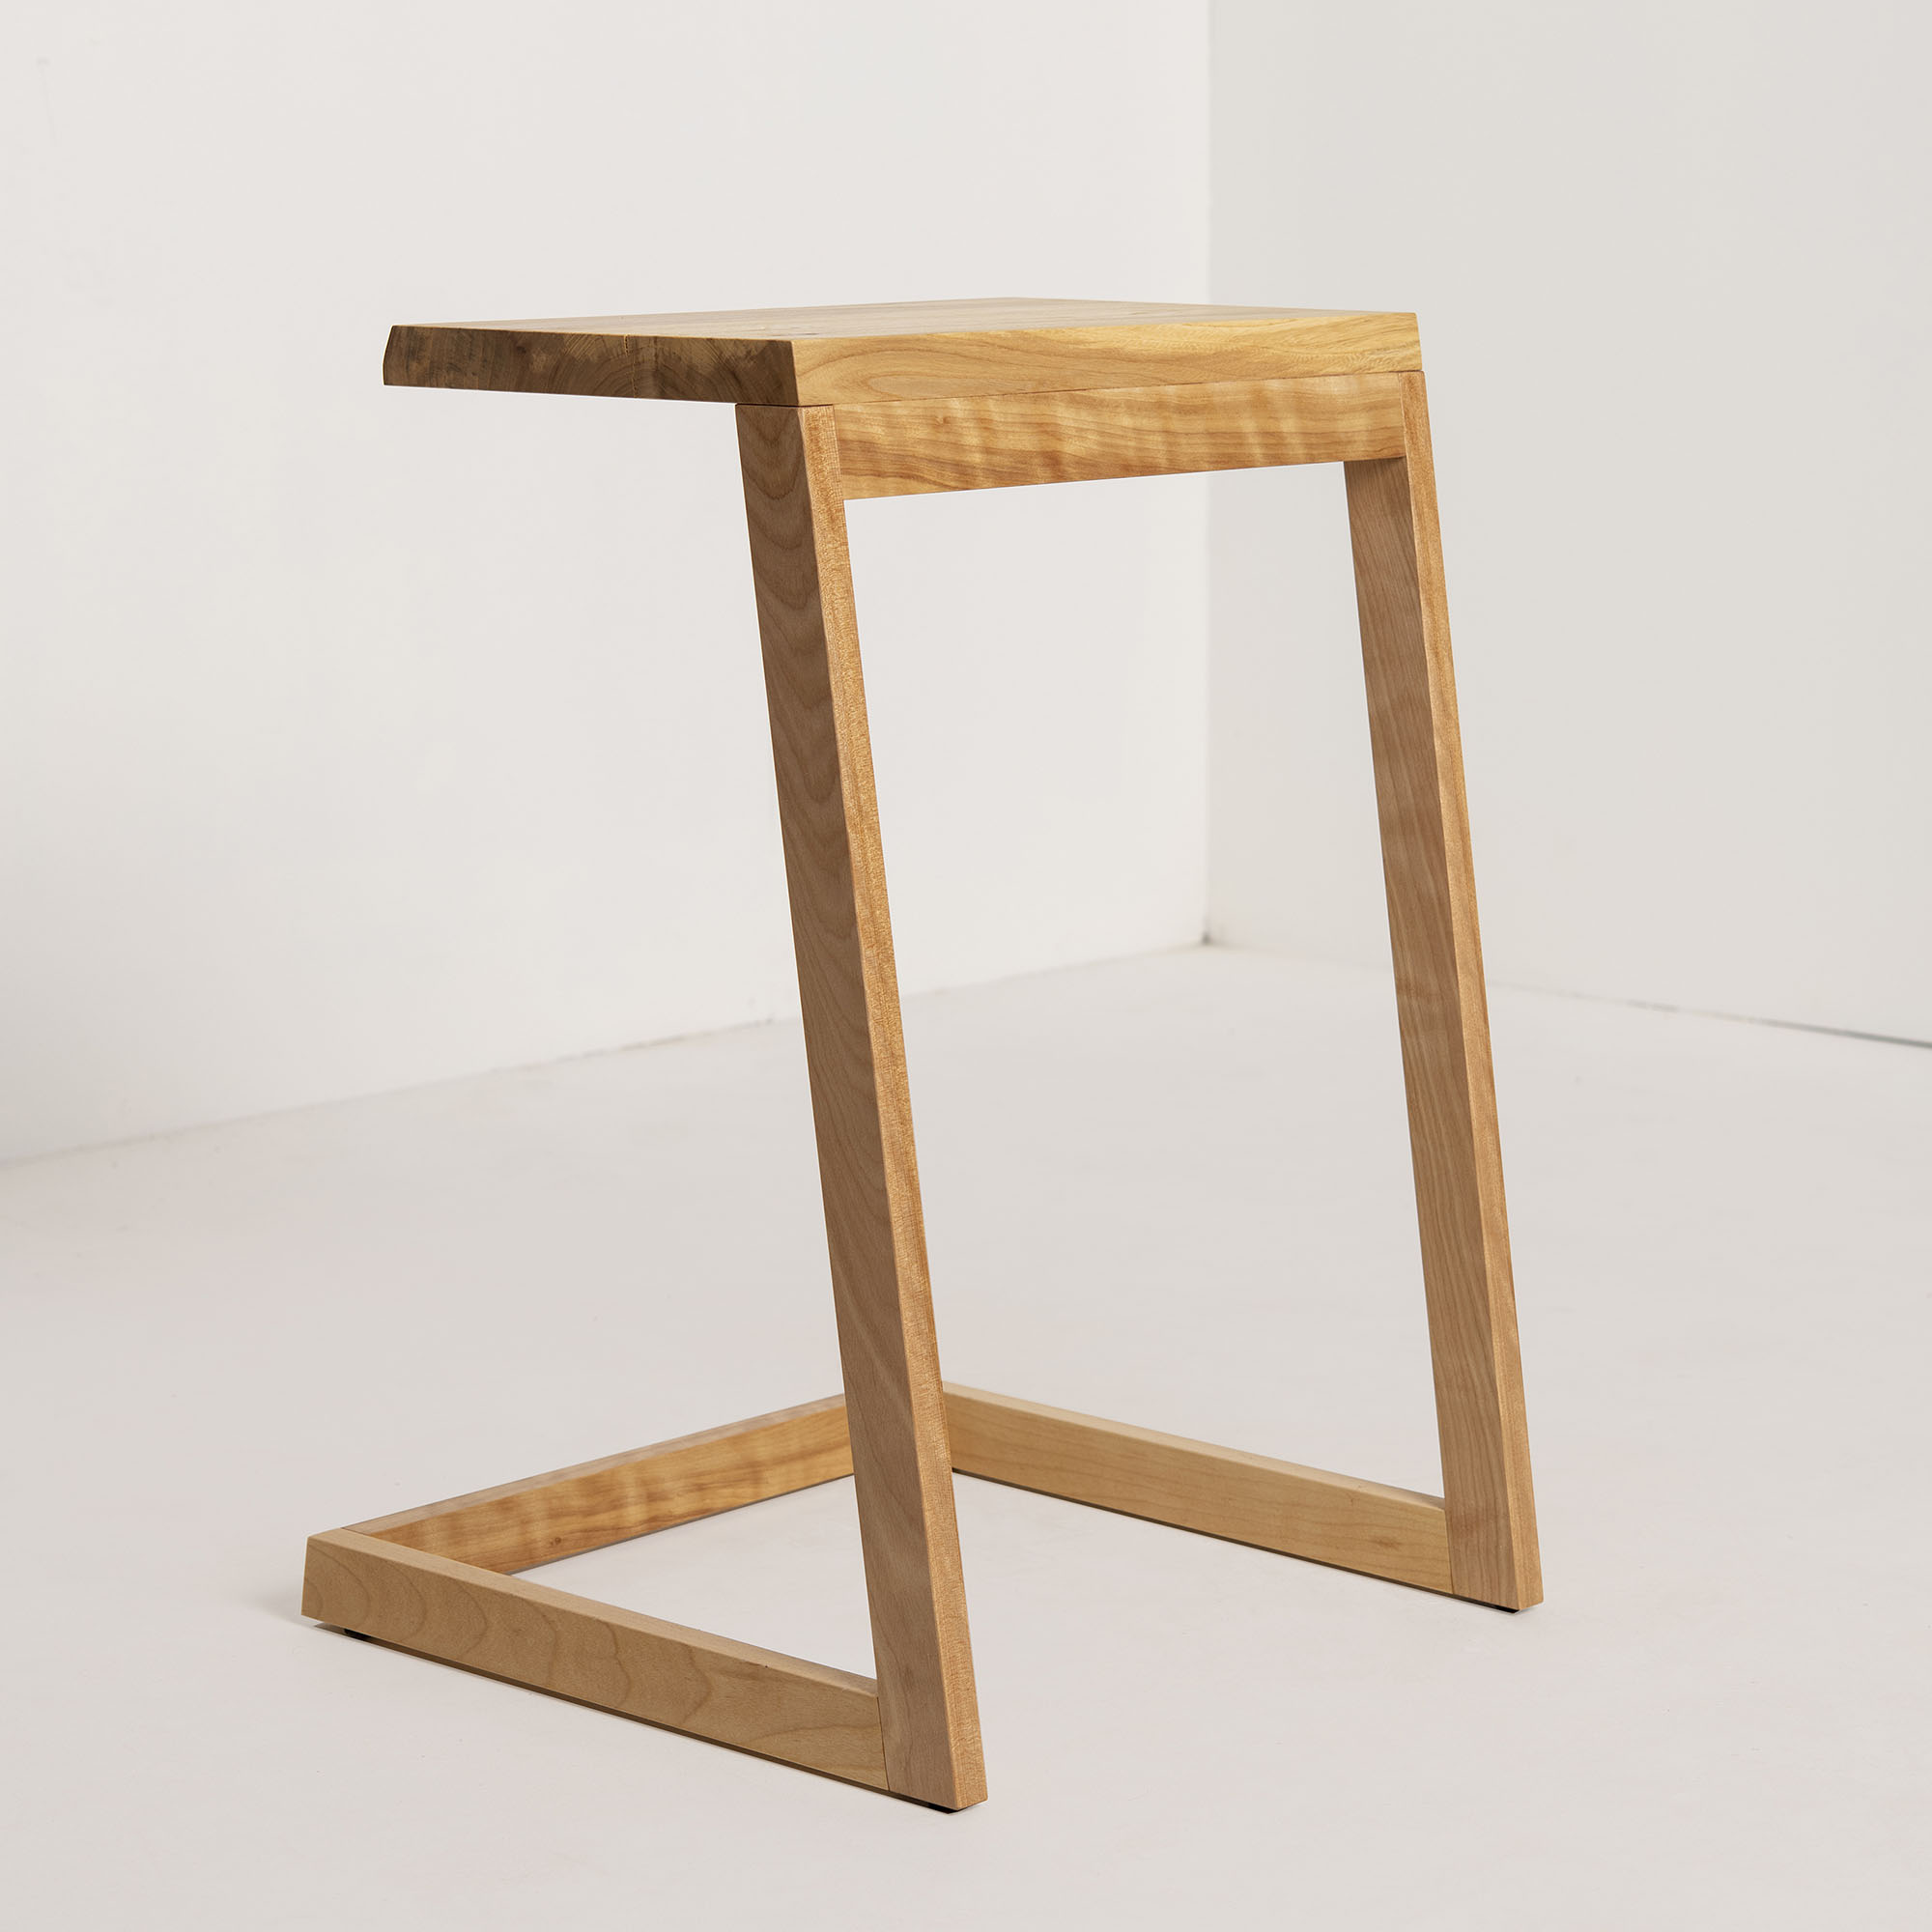 Tablette d'appoint design locale